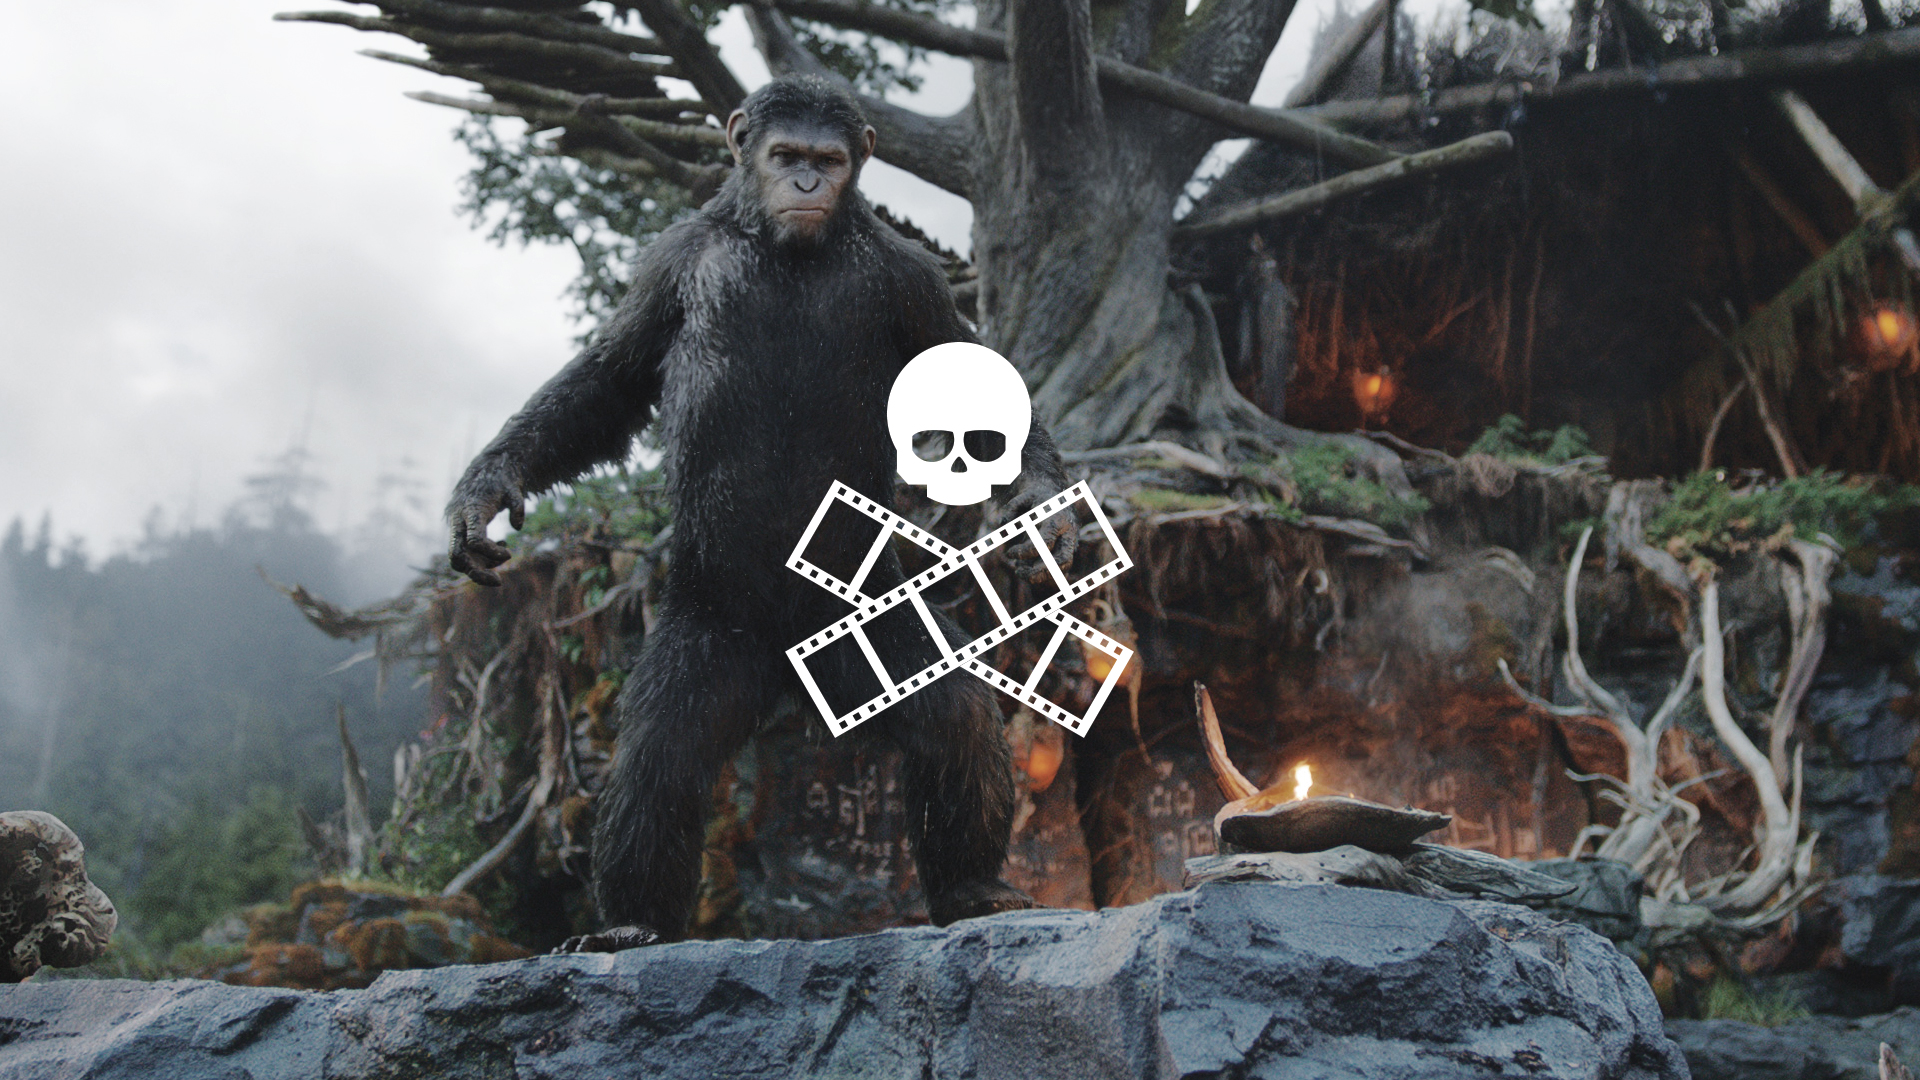 106. Dawn of the Planet of the Apes